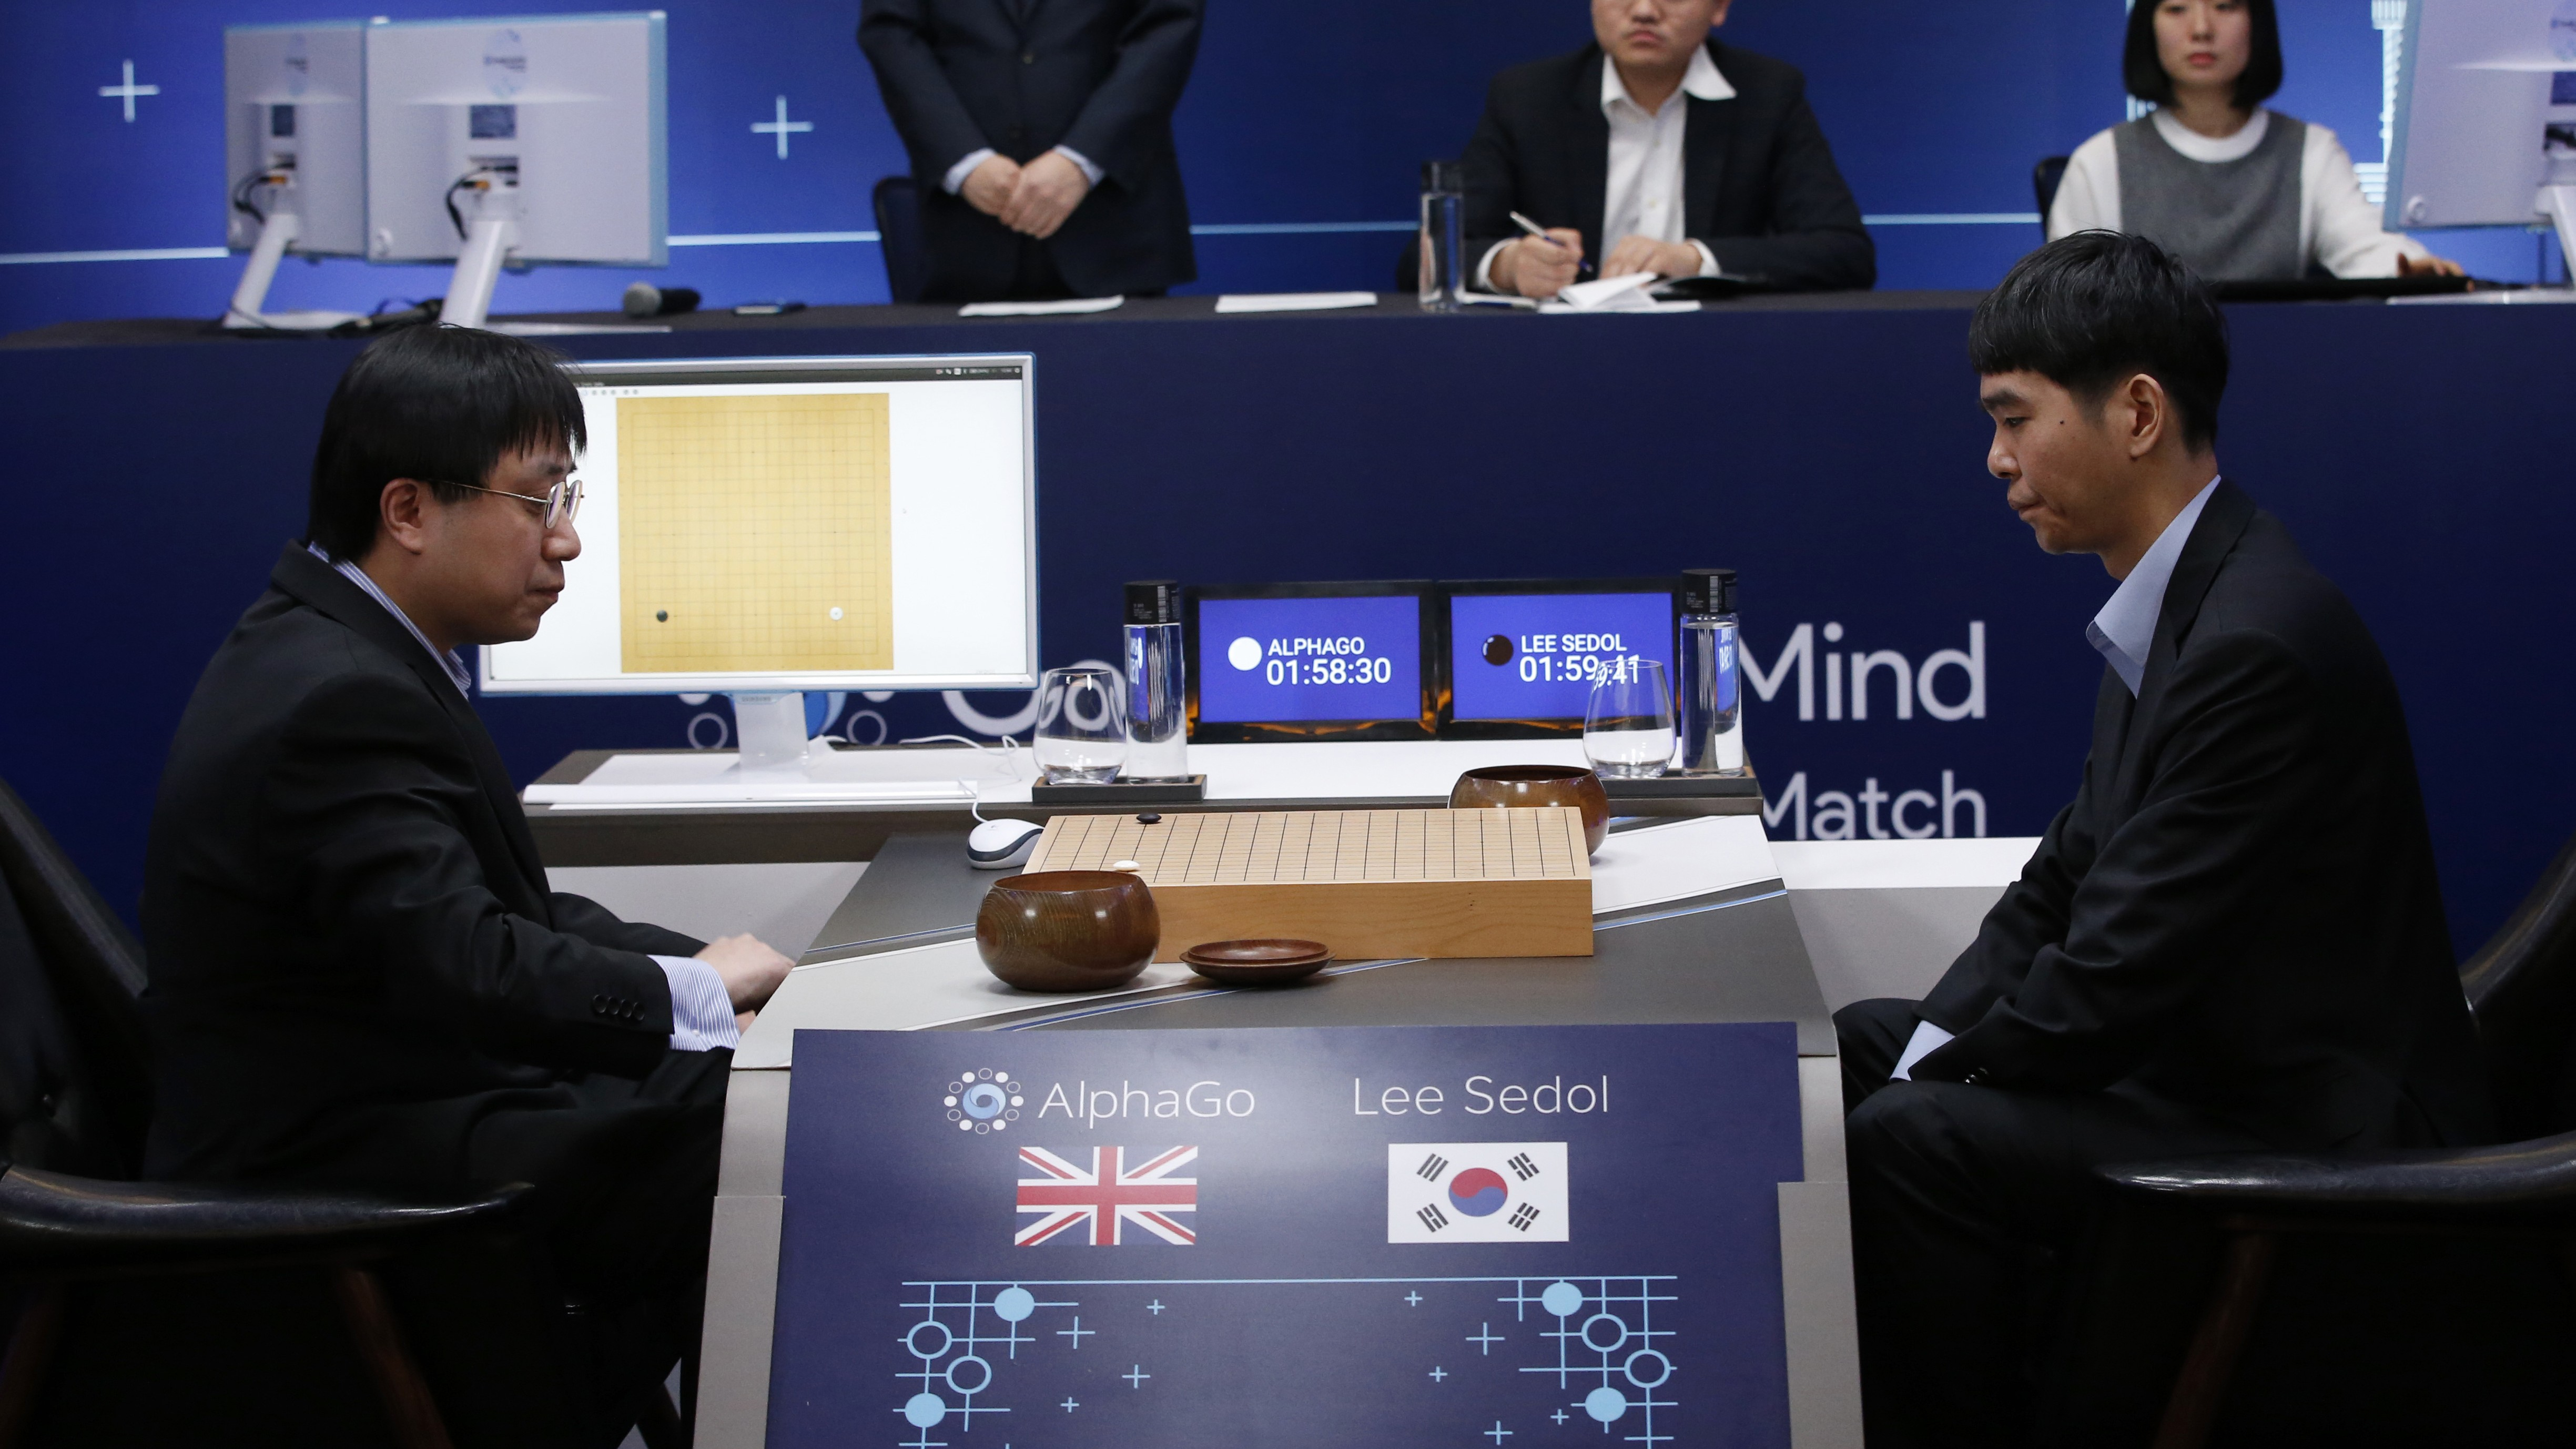 South Korean professional Go player Lee Sedol, right, prepares for his second stone against Google's artificial intelligence program, AlphaGo, as Google DeepMind's lead programmer Aja Huang, left, sits during the Google DeepMind Challenge Match in Seoul, South Korea, Wednesday, March 9, 2016. Google's computer program AlphaGo defeated its human opponent, South Korean Go champion Lee Sedol, on Wednesday in the first game of a historic five-game match between human and computer. (AP Photo/Lee Jin-man)